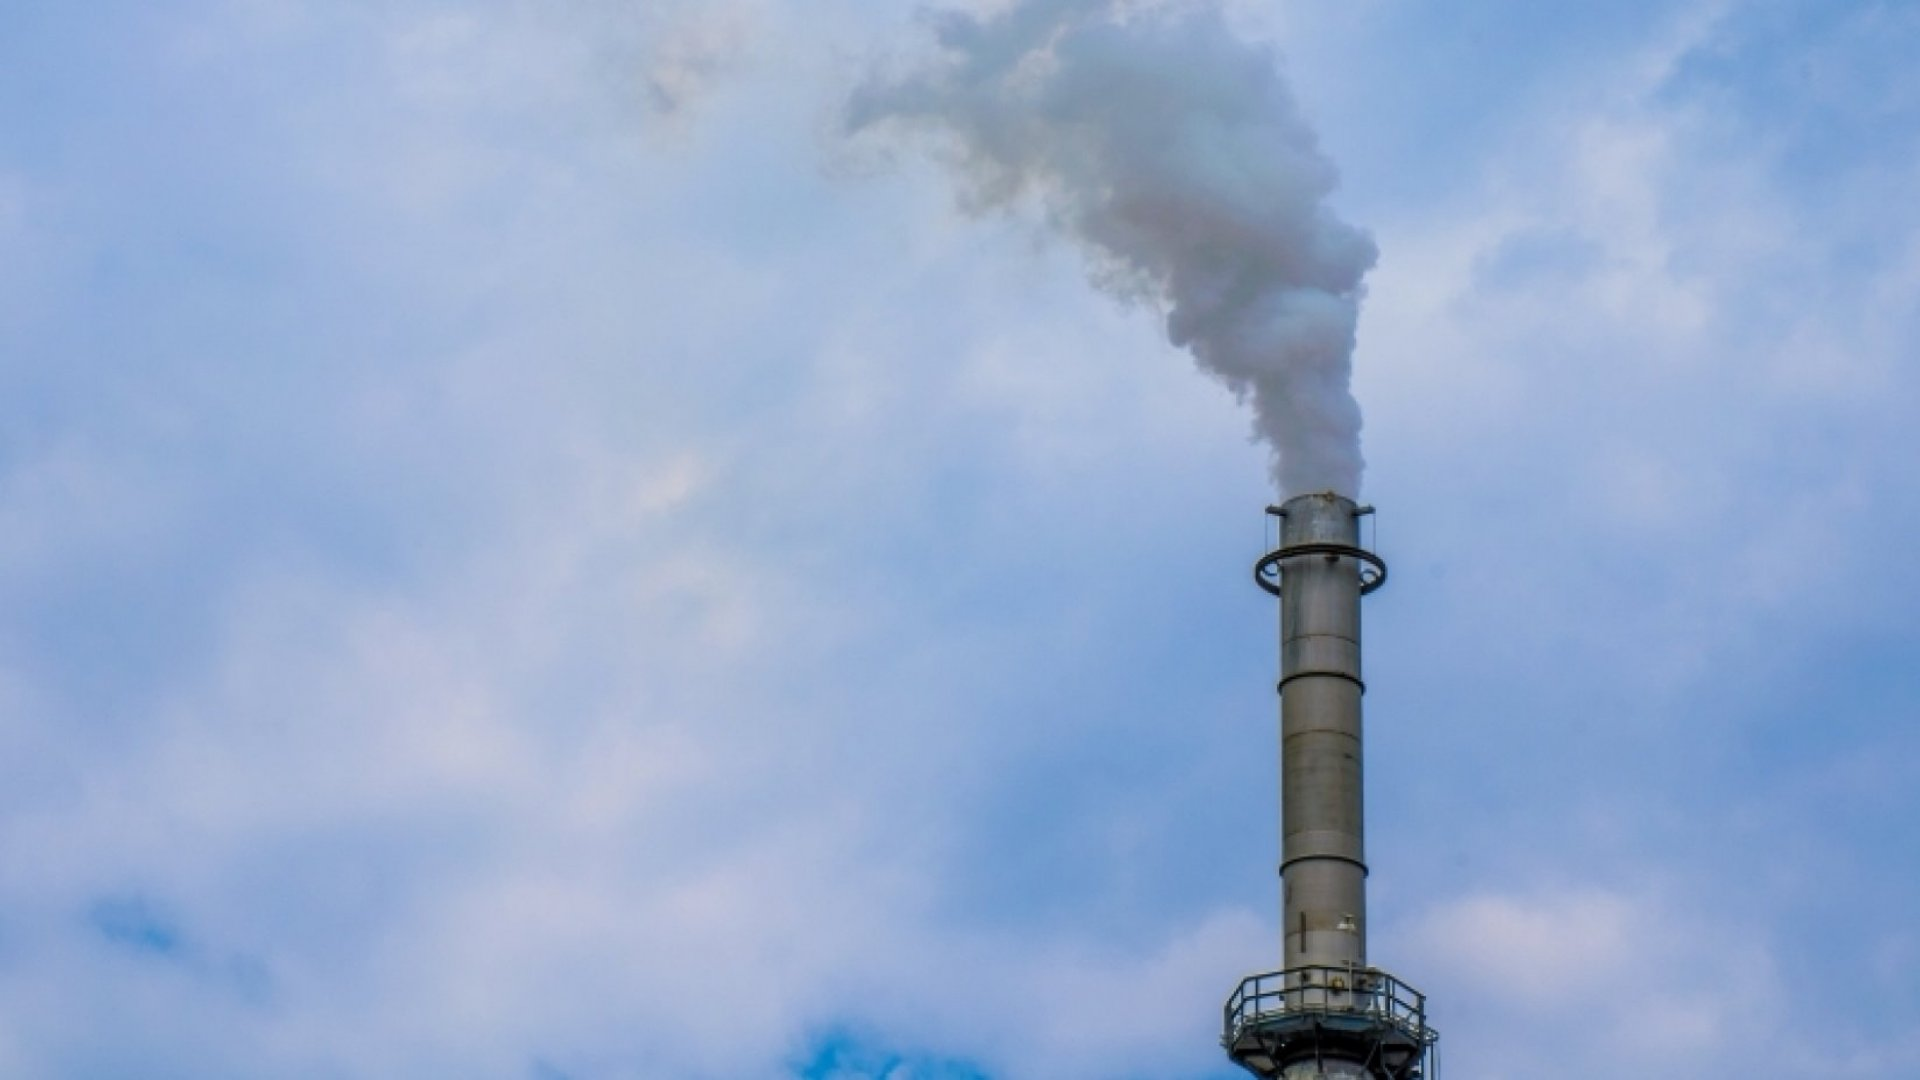 Why Some Experts Say Carbon Taxes Don't Work